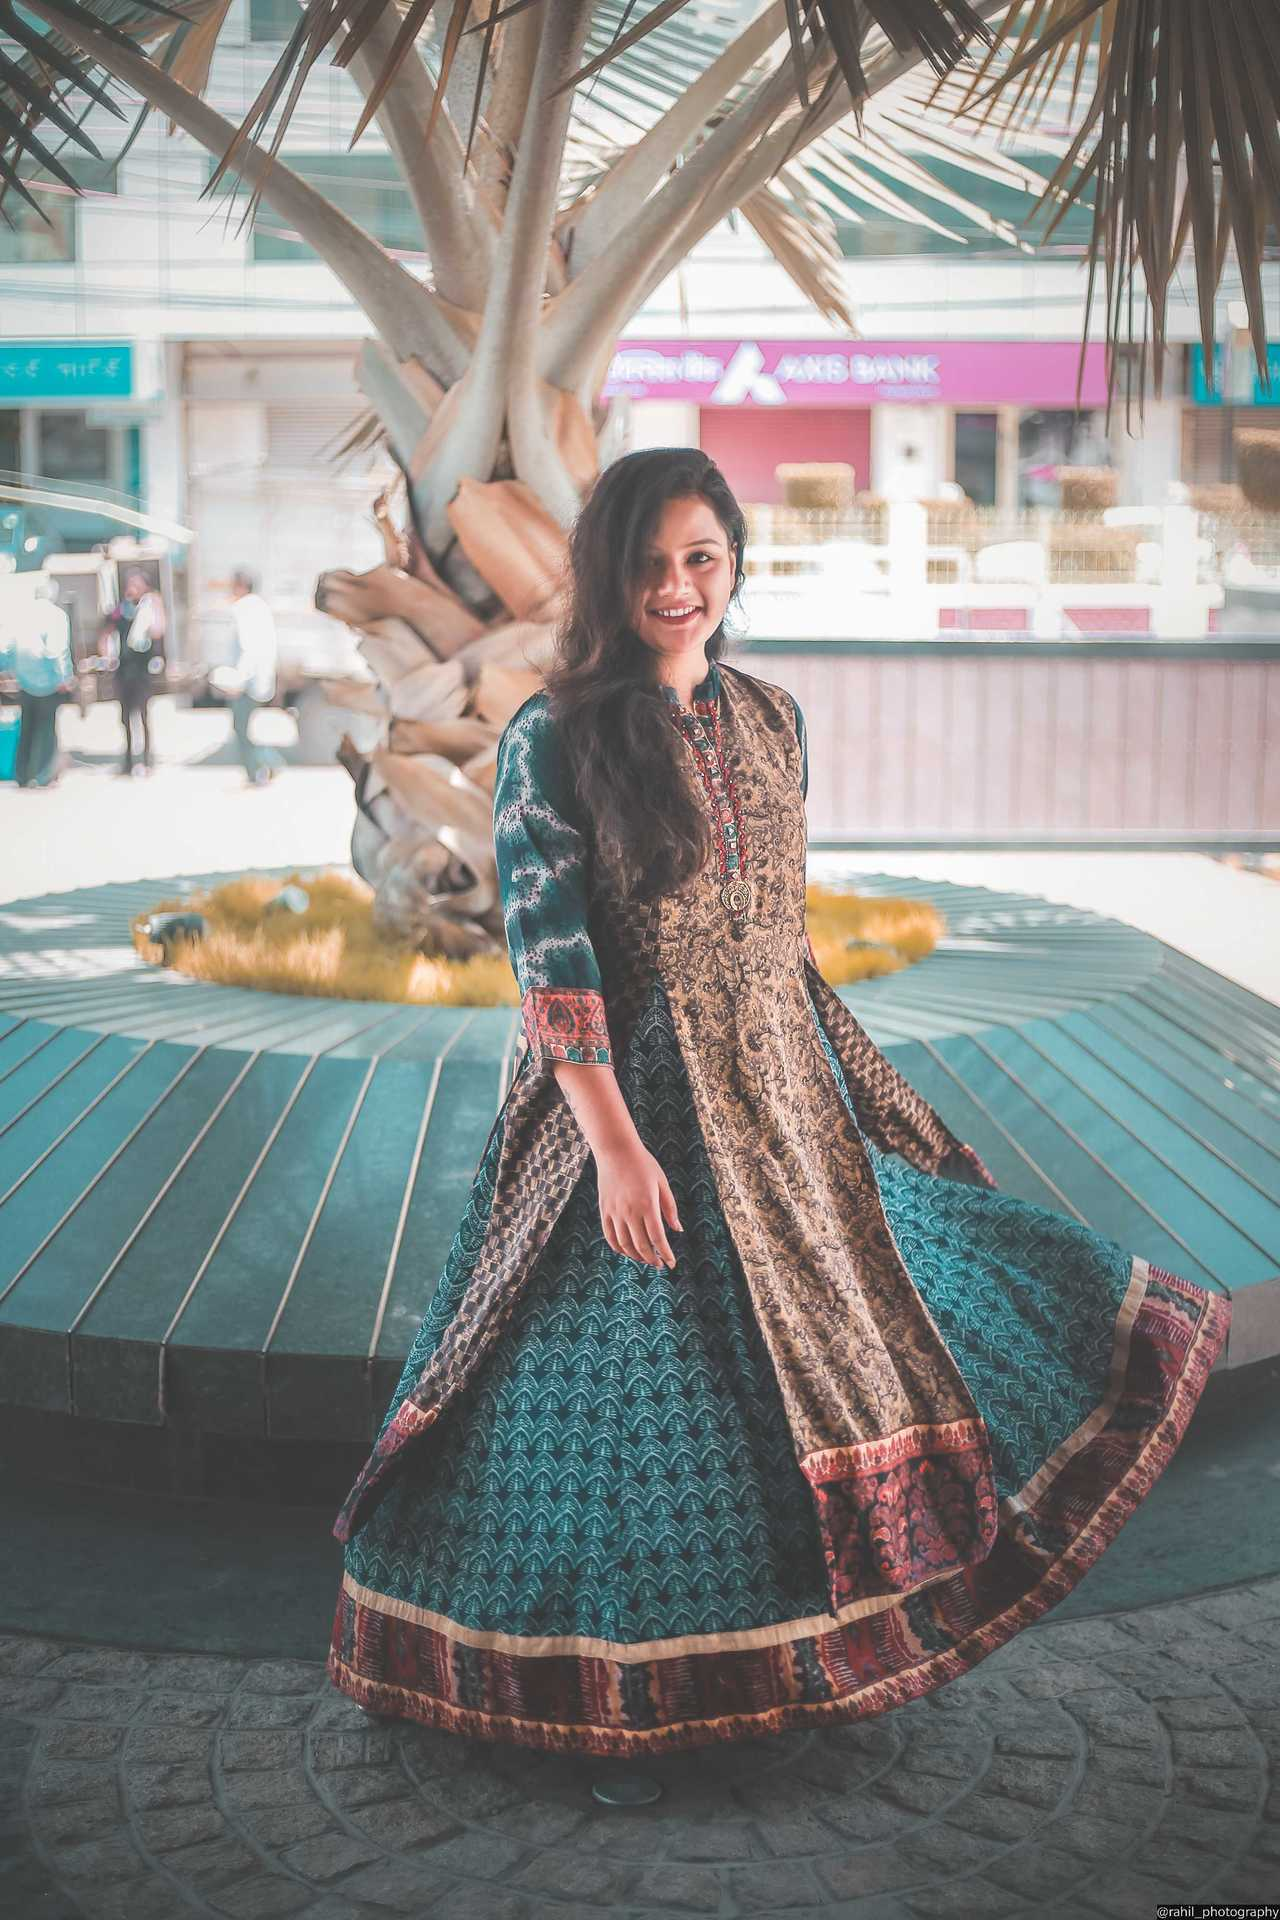 The Fashion Curve by Madhurima - PSX_20190601_142836